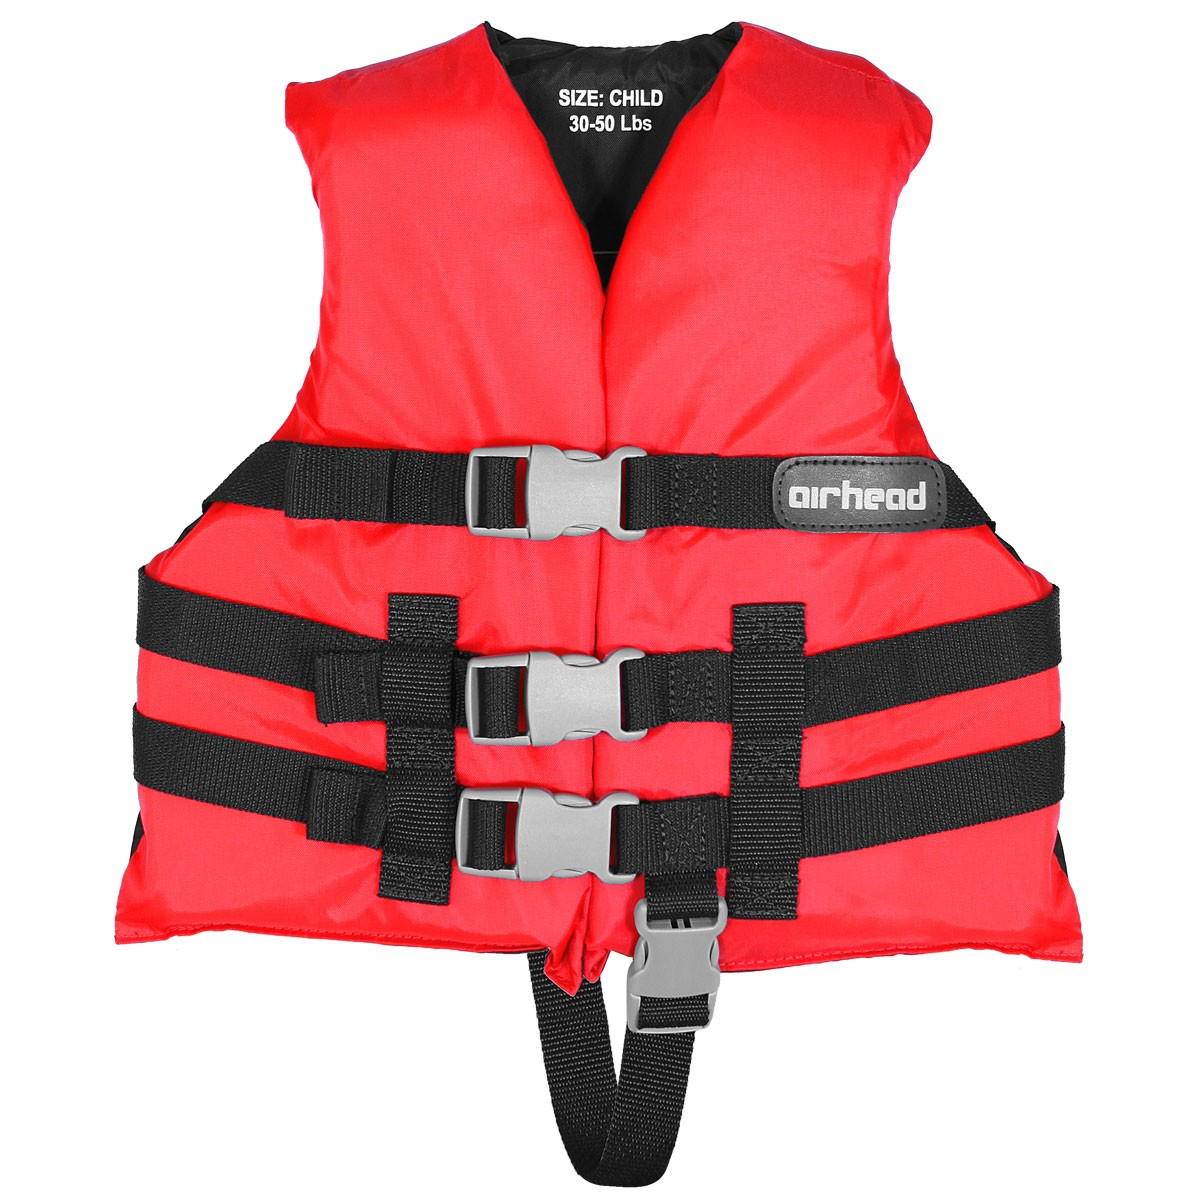 Airhead Open Sided Child Nylon Life Vest Red